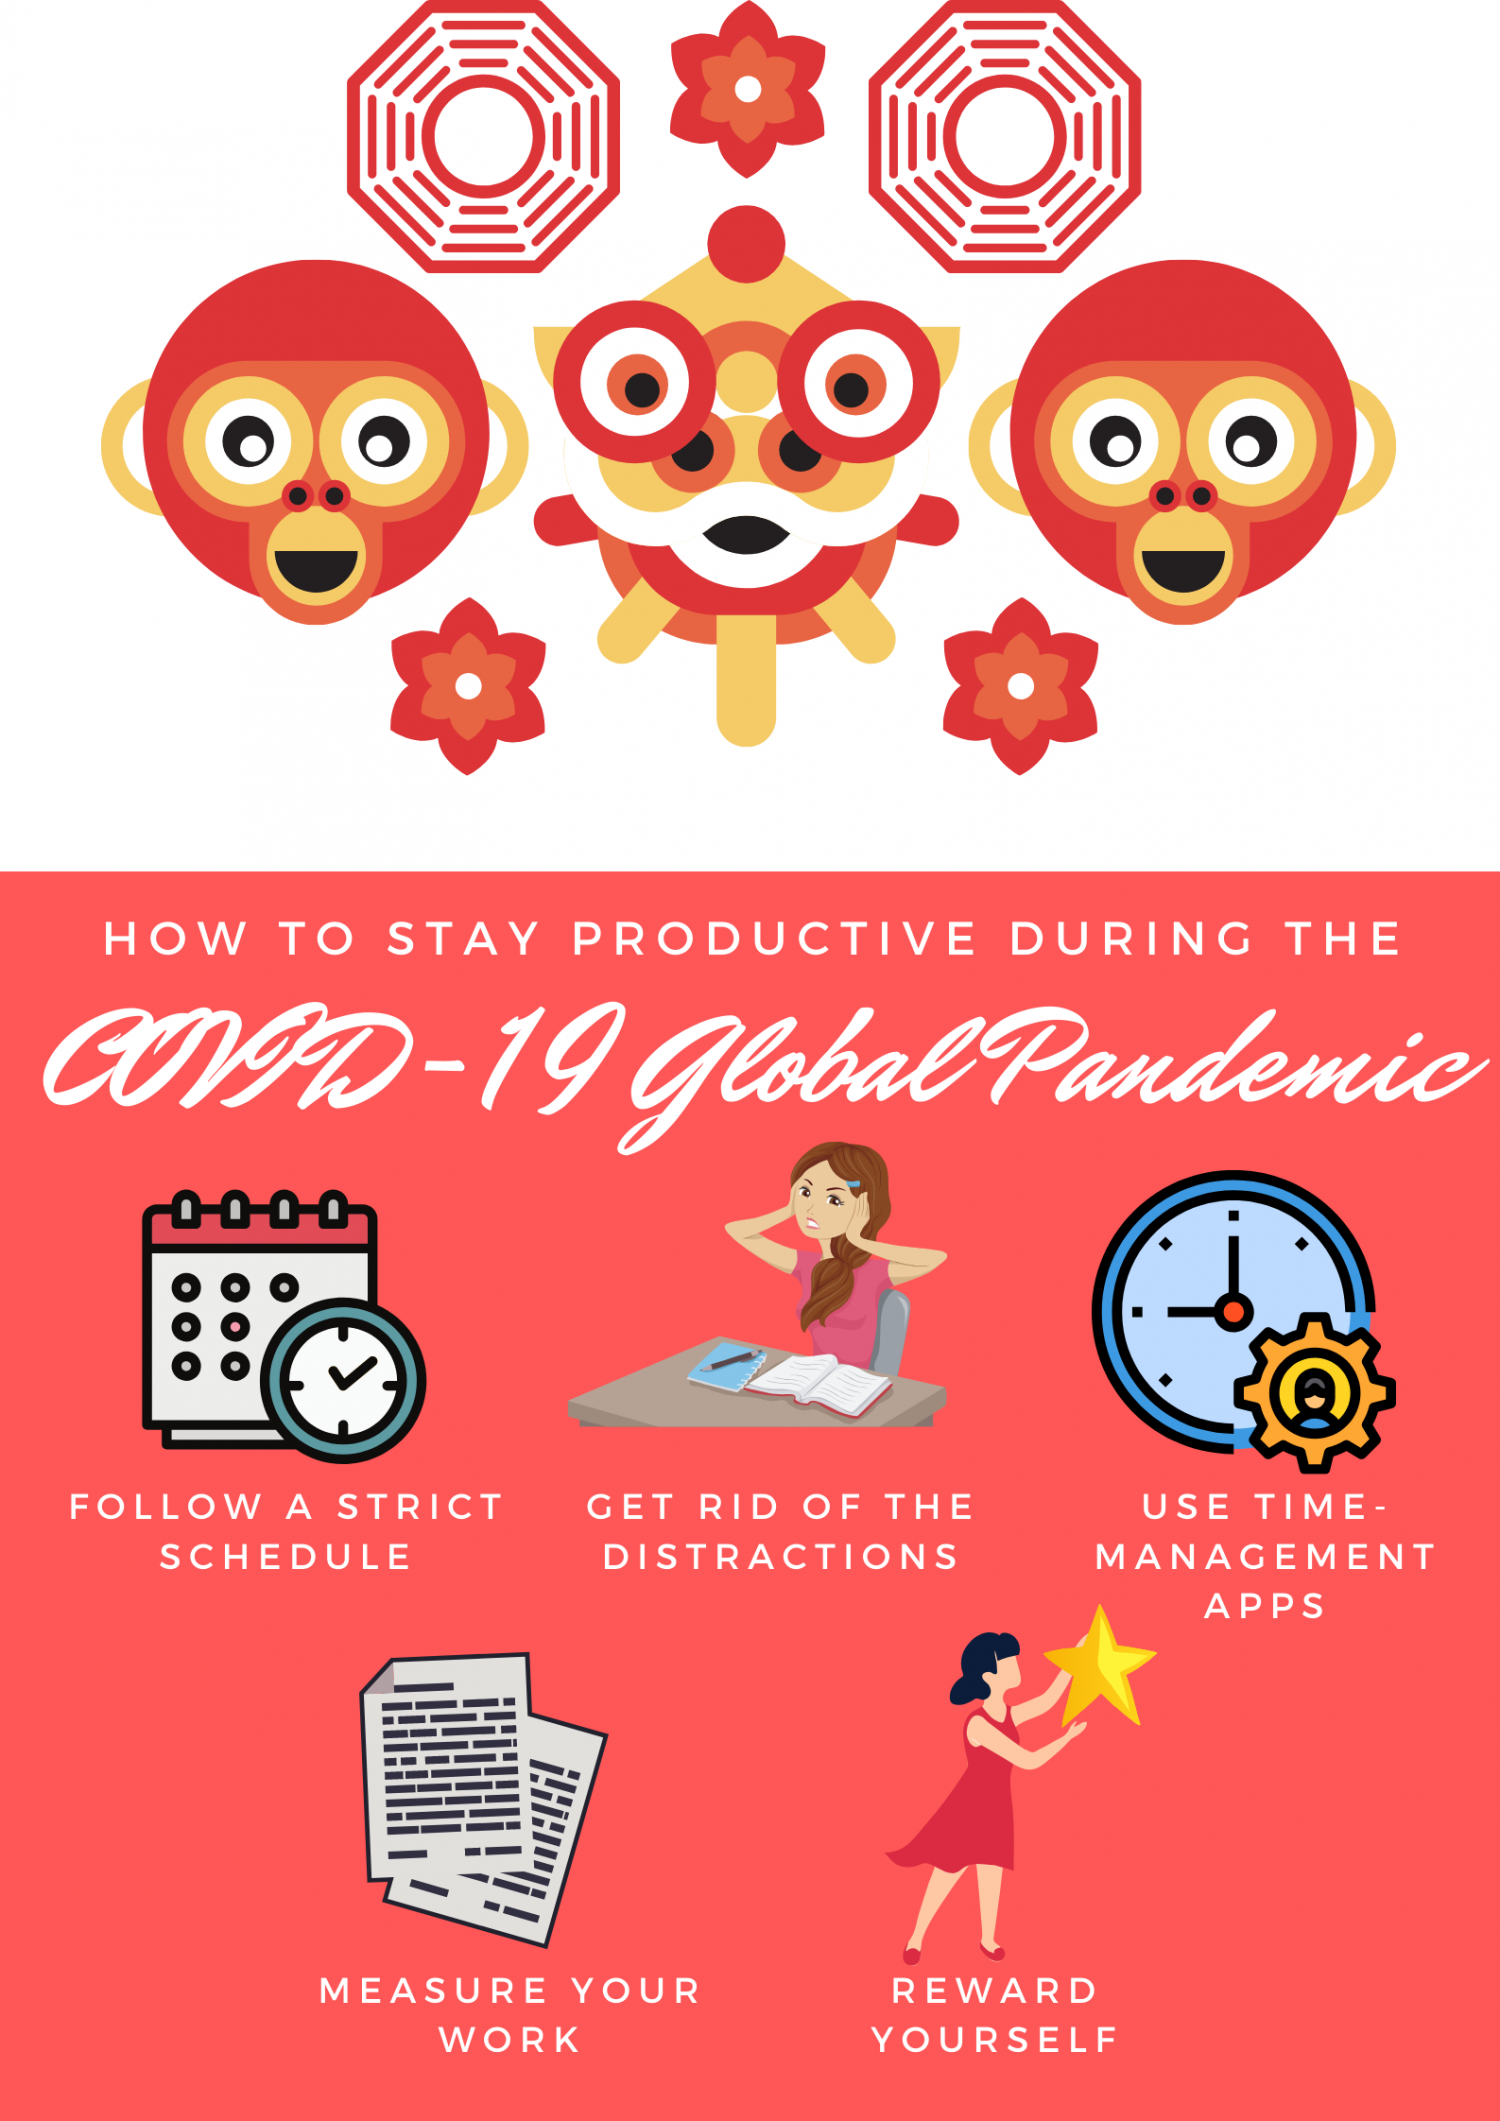 How to Stay Productive During the COVID-19 Global Pandemic Infographic